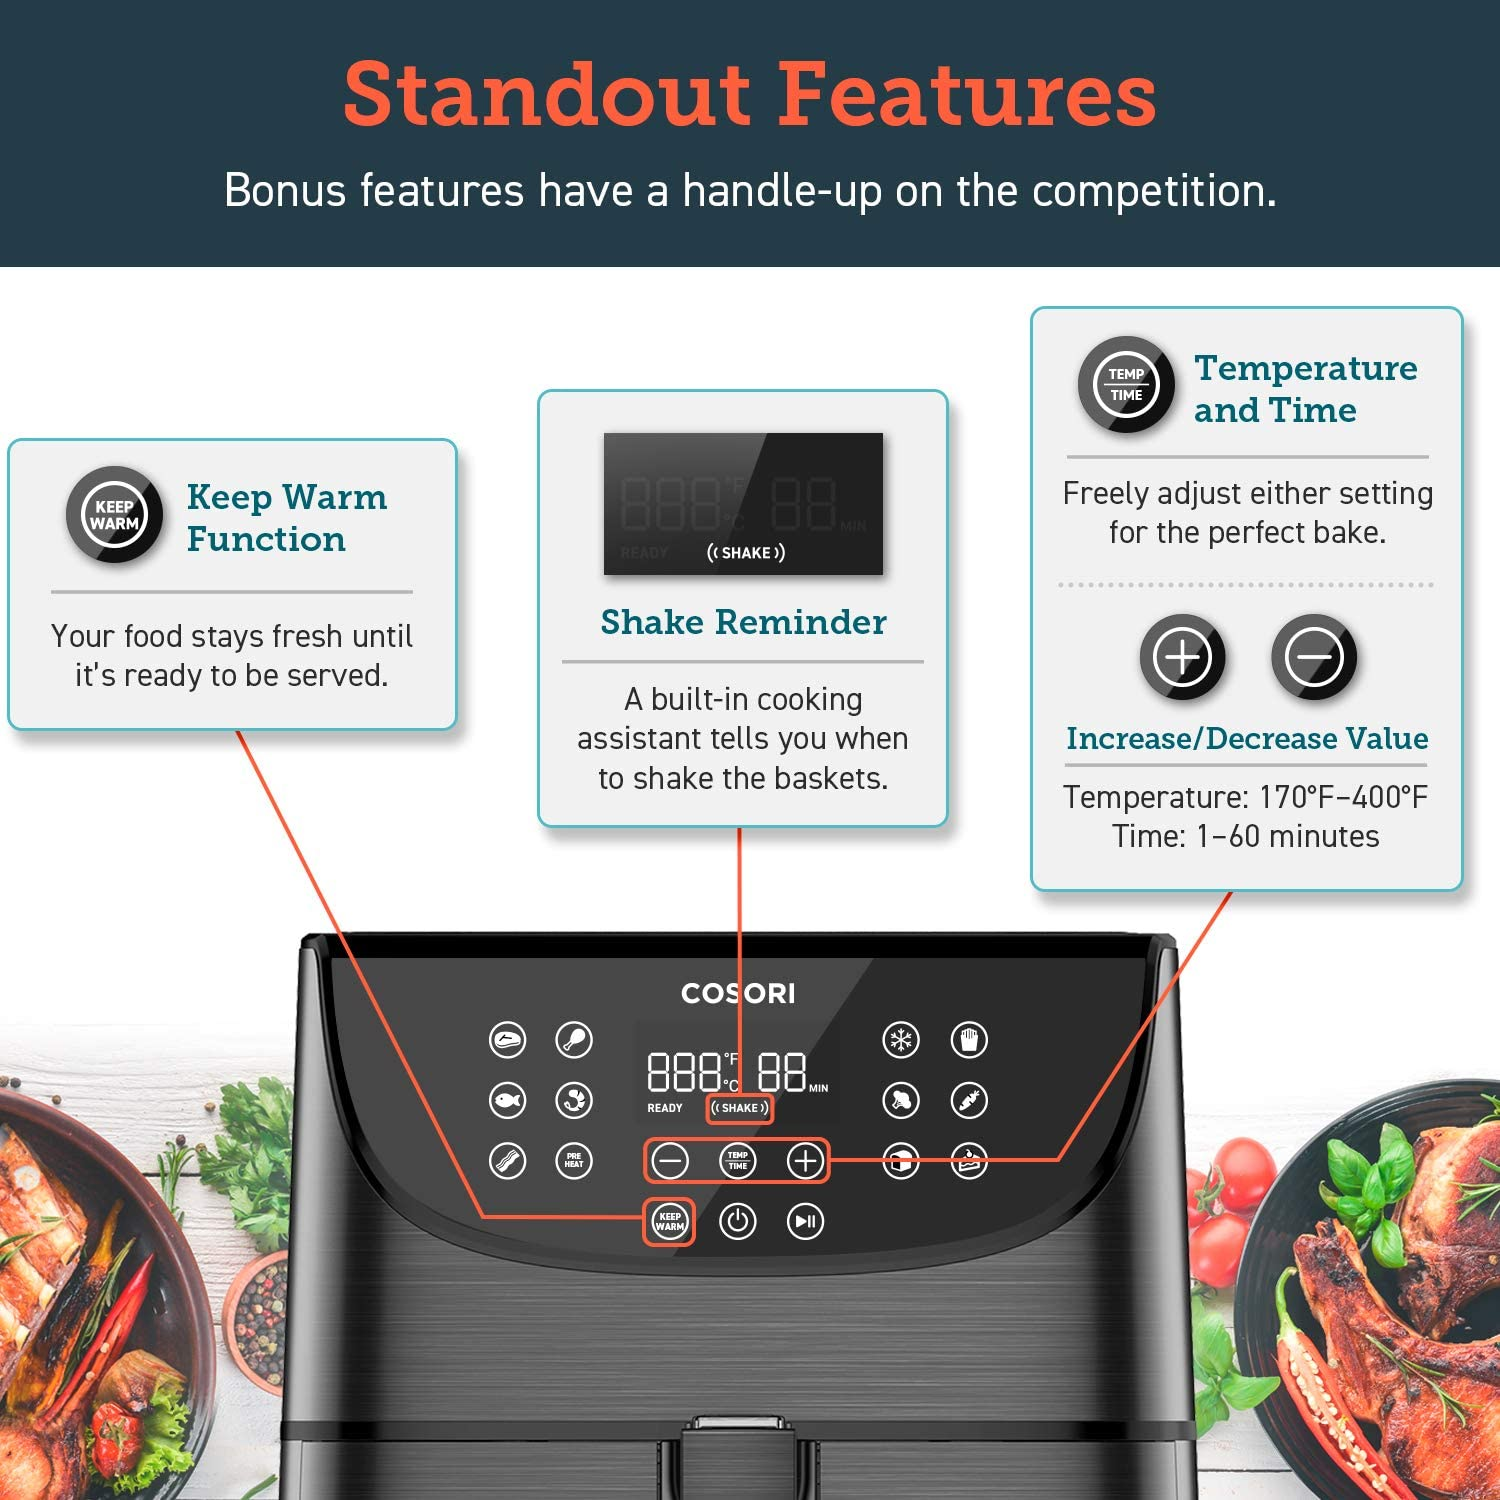 COSORI 5.8QT Electric Hot Air Fryers Oven - Standout features